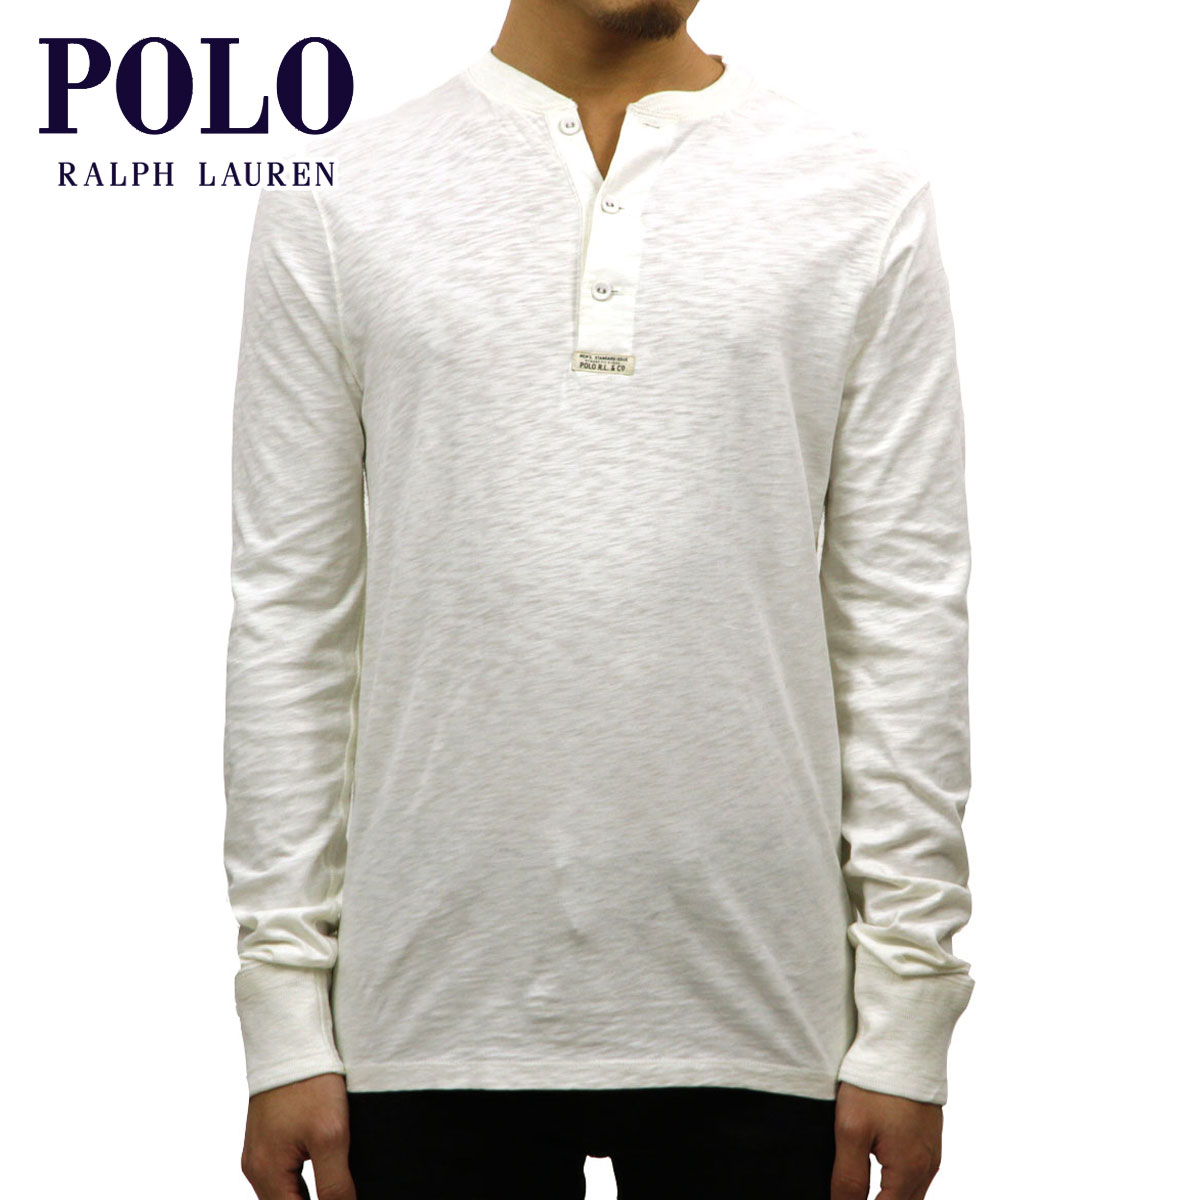 cc642feb Polo Ralph Lauren POLO RALPH LAUREN regular article men henley neck long  sleeves T-shirt ...